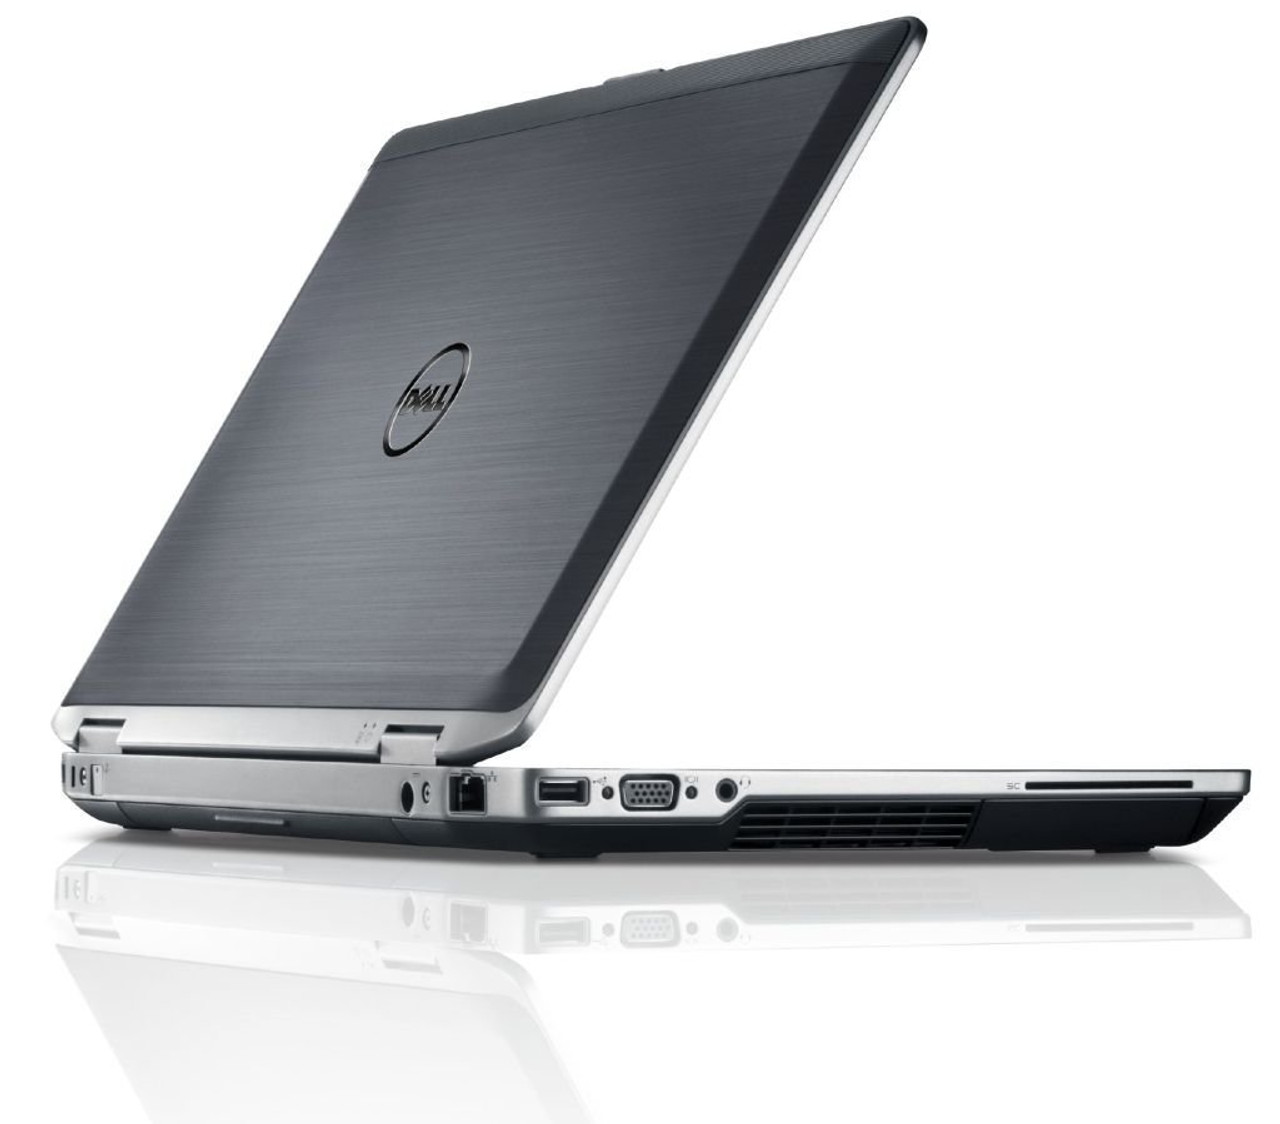 Dell Latitude E6430 Laptop Core i7 2.9GHz, 4GB Ram, 320GB HDD, DVD-RW, Windows 10 Pro 64 Notebook